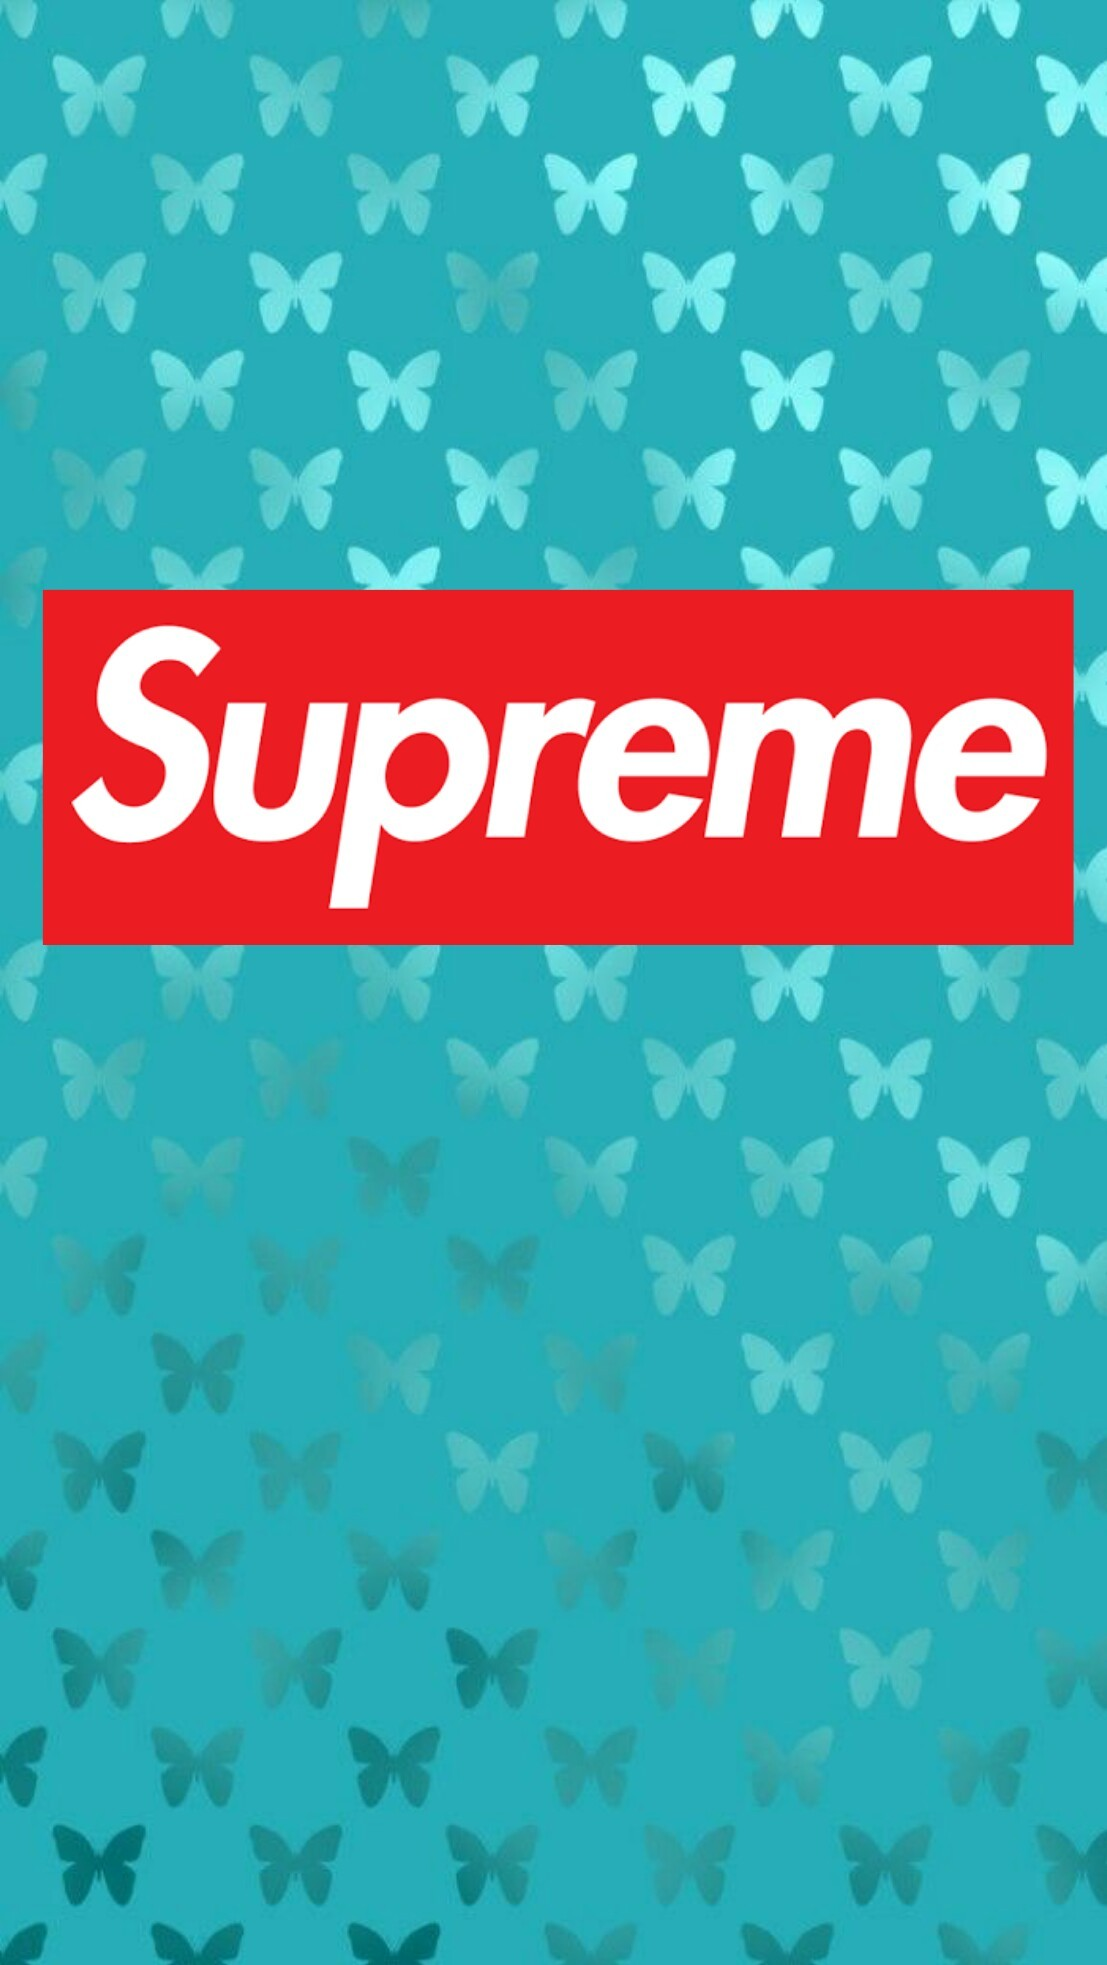 Supreme wallpaper Download High Resolution backgrounds 1107x1965